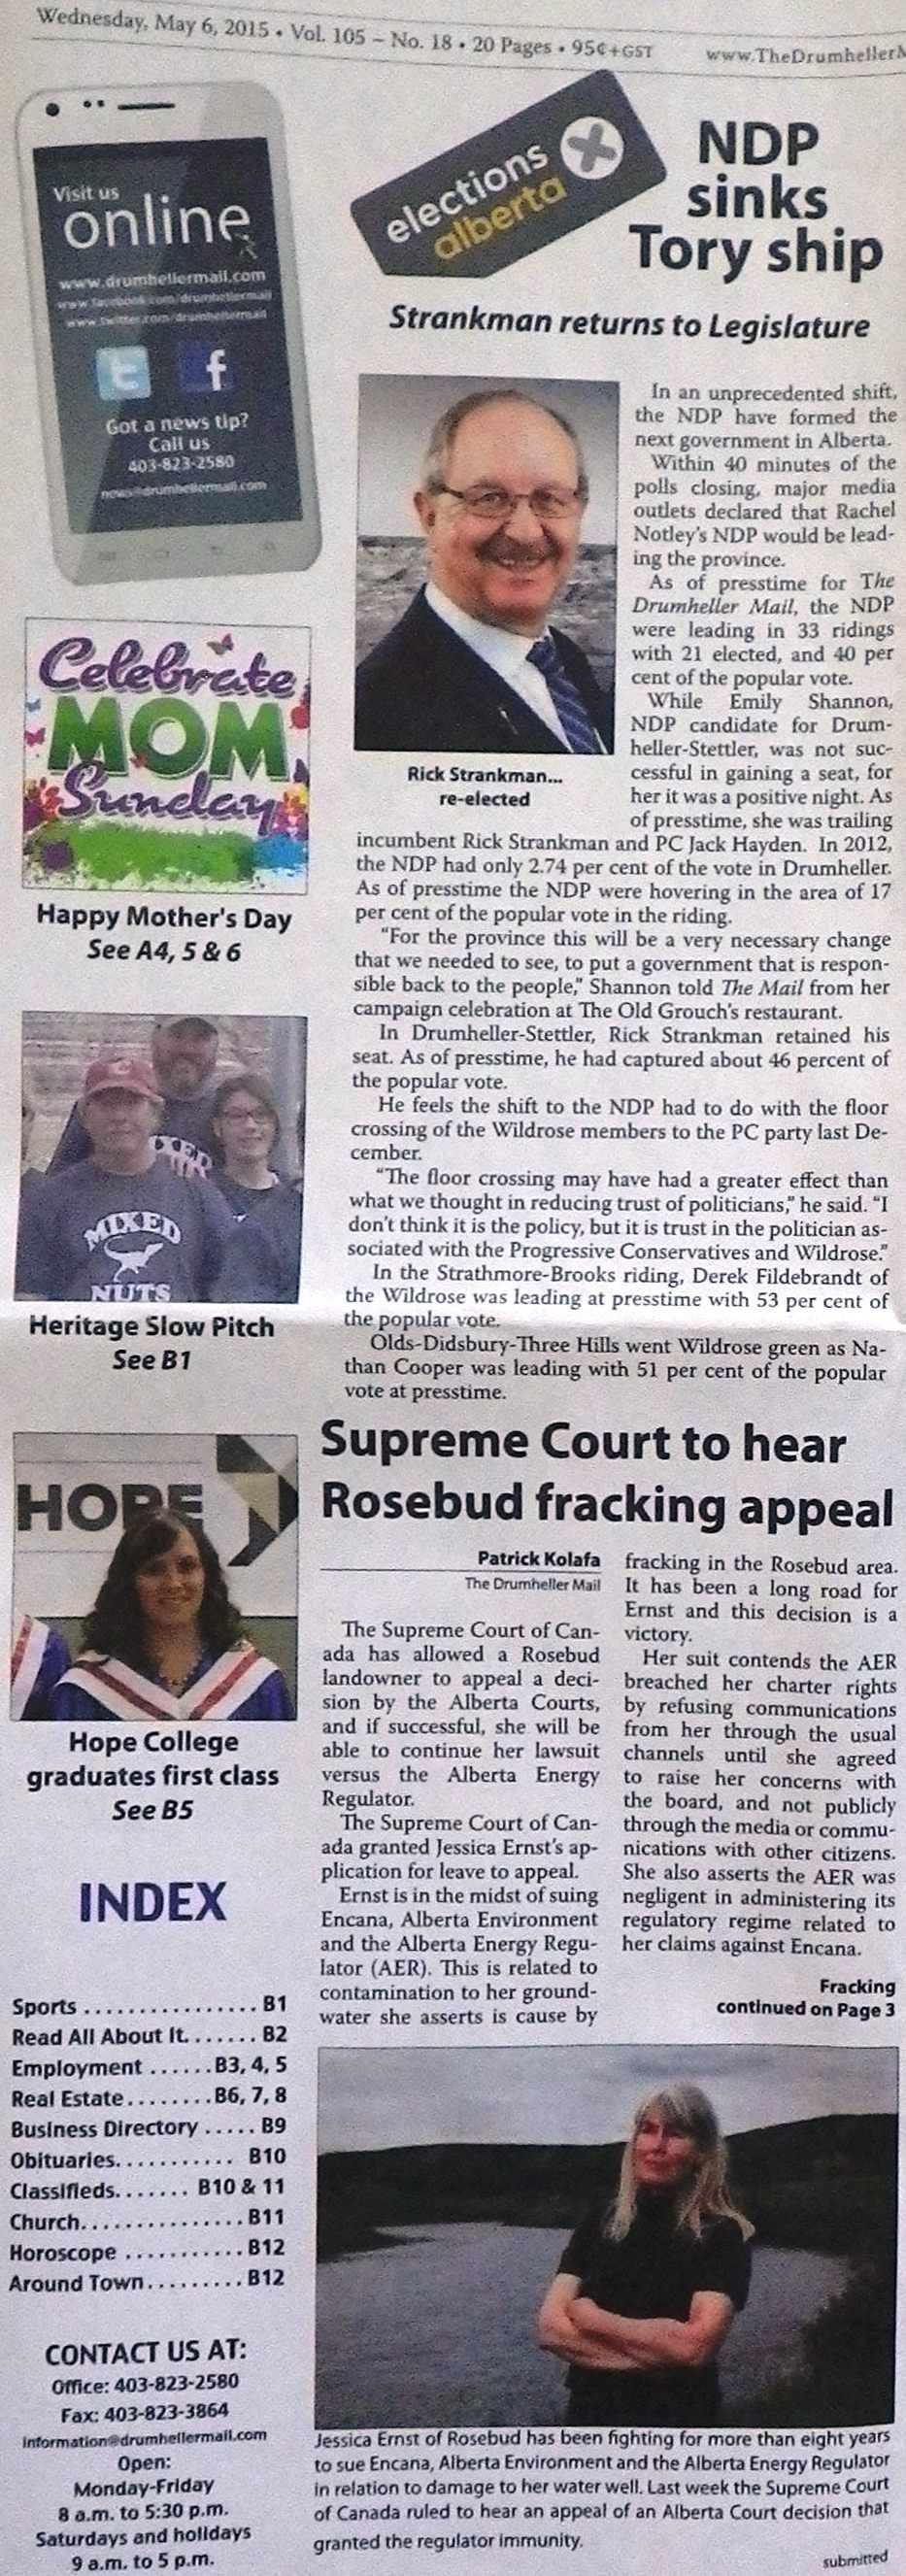 2015 05 06 Drumheller Mail Front Page, Supreme Court to hear Rosebud Fracking appeal